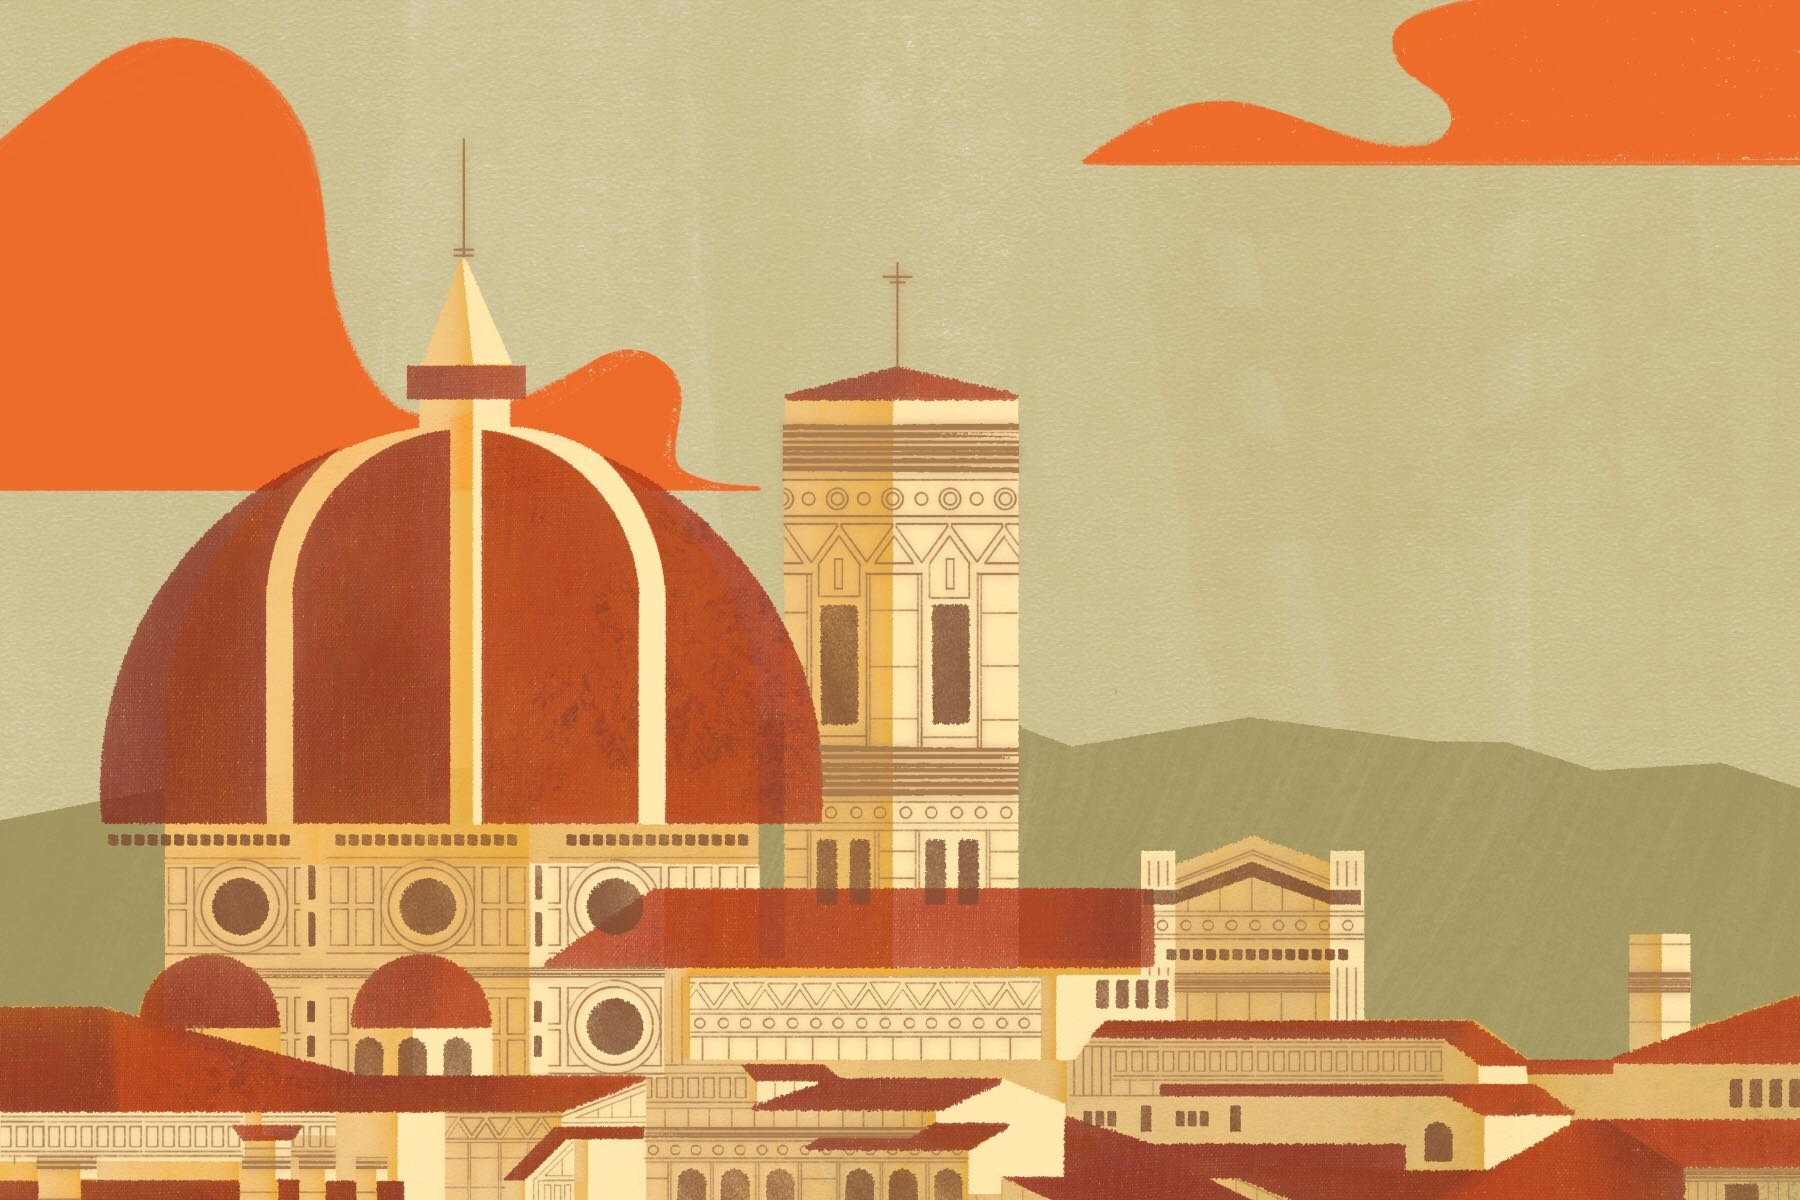 Illustration by Francesca Mahaney of church domes in Italy